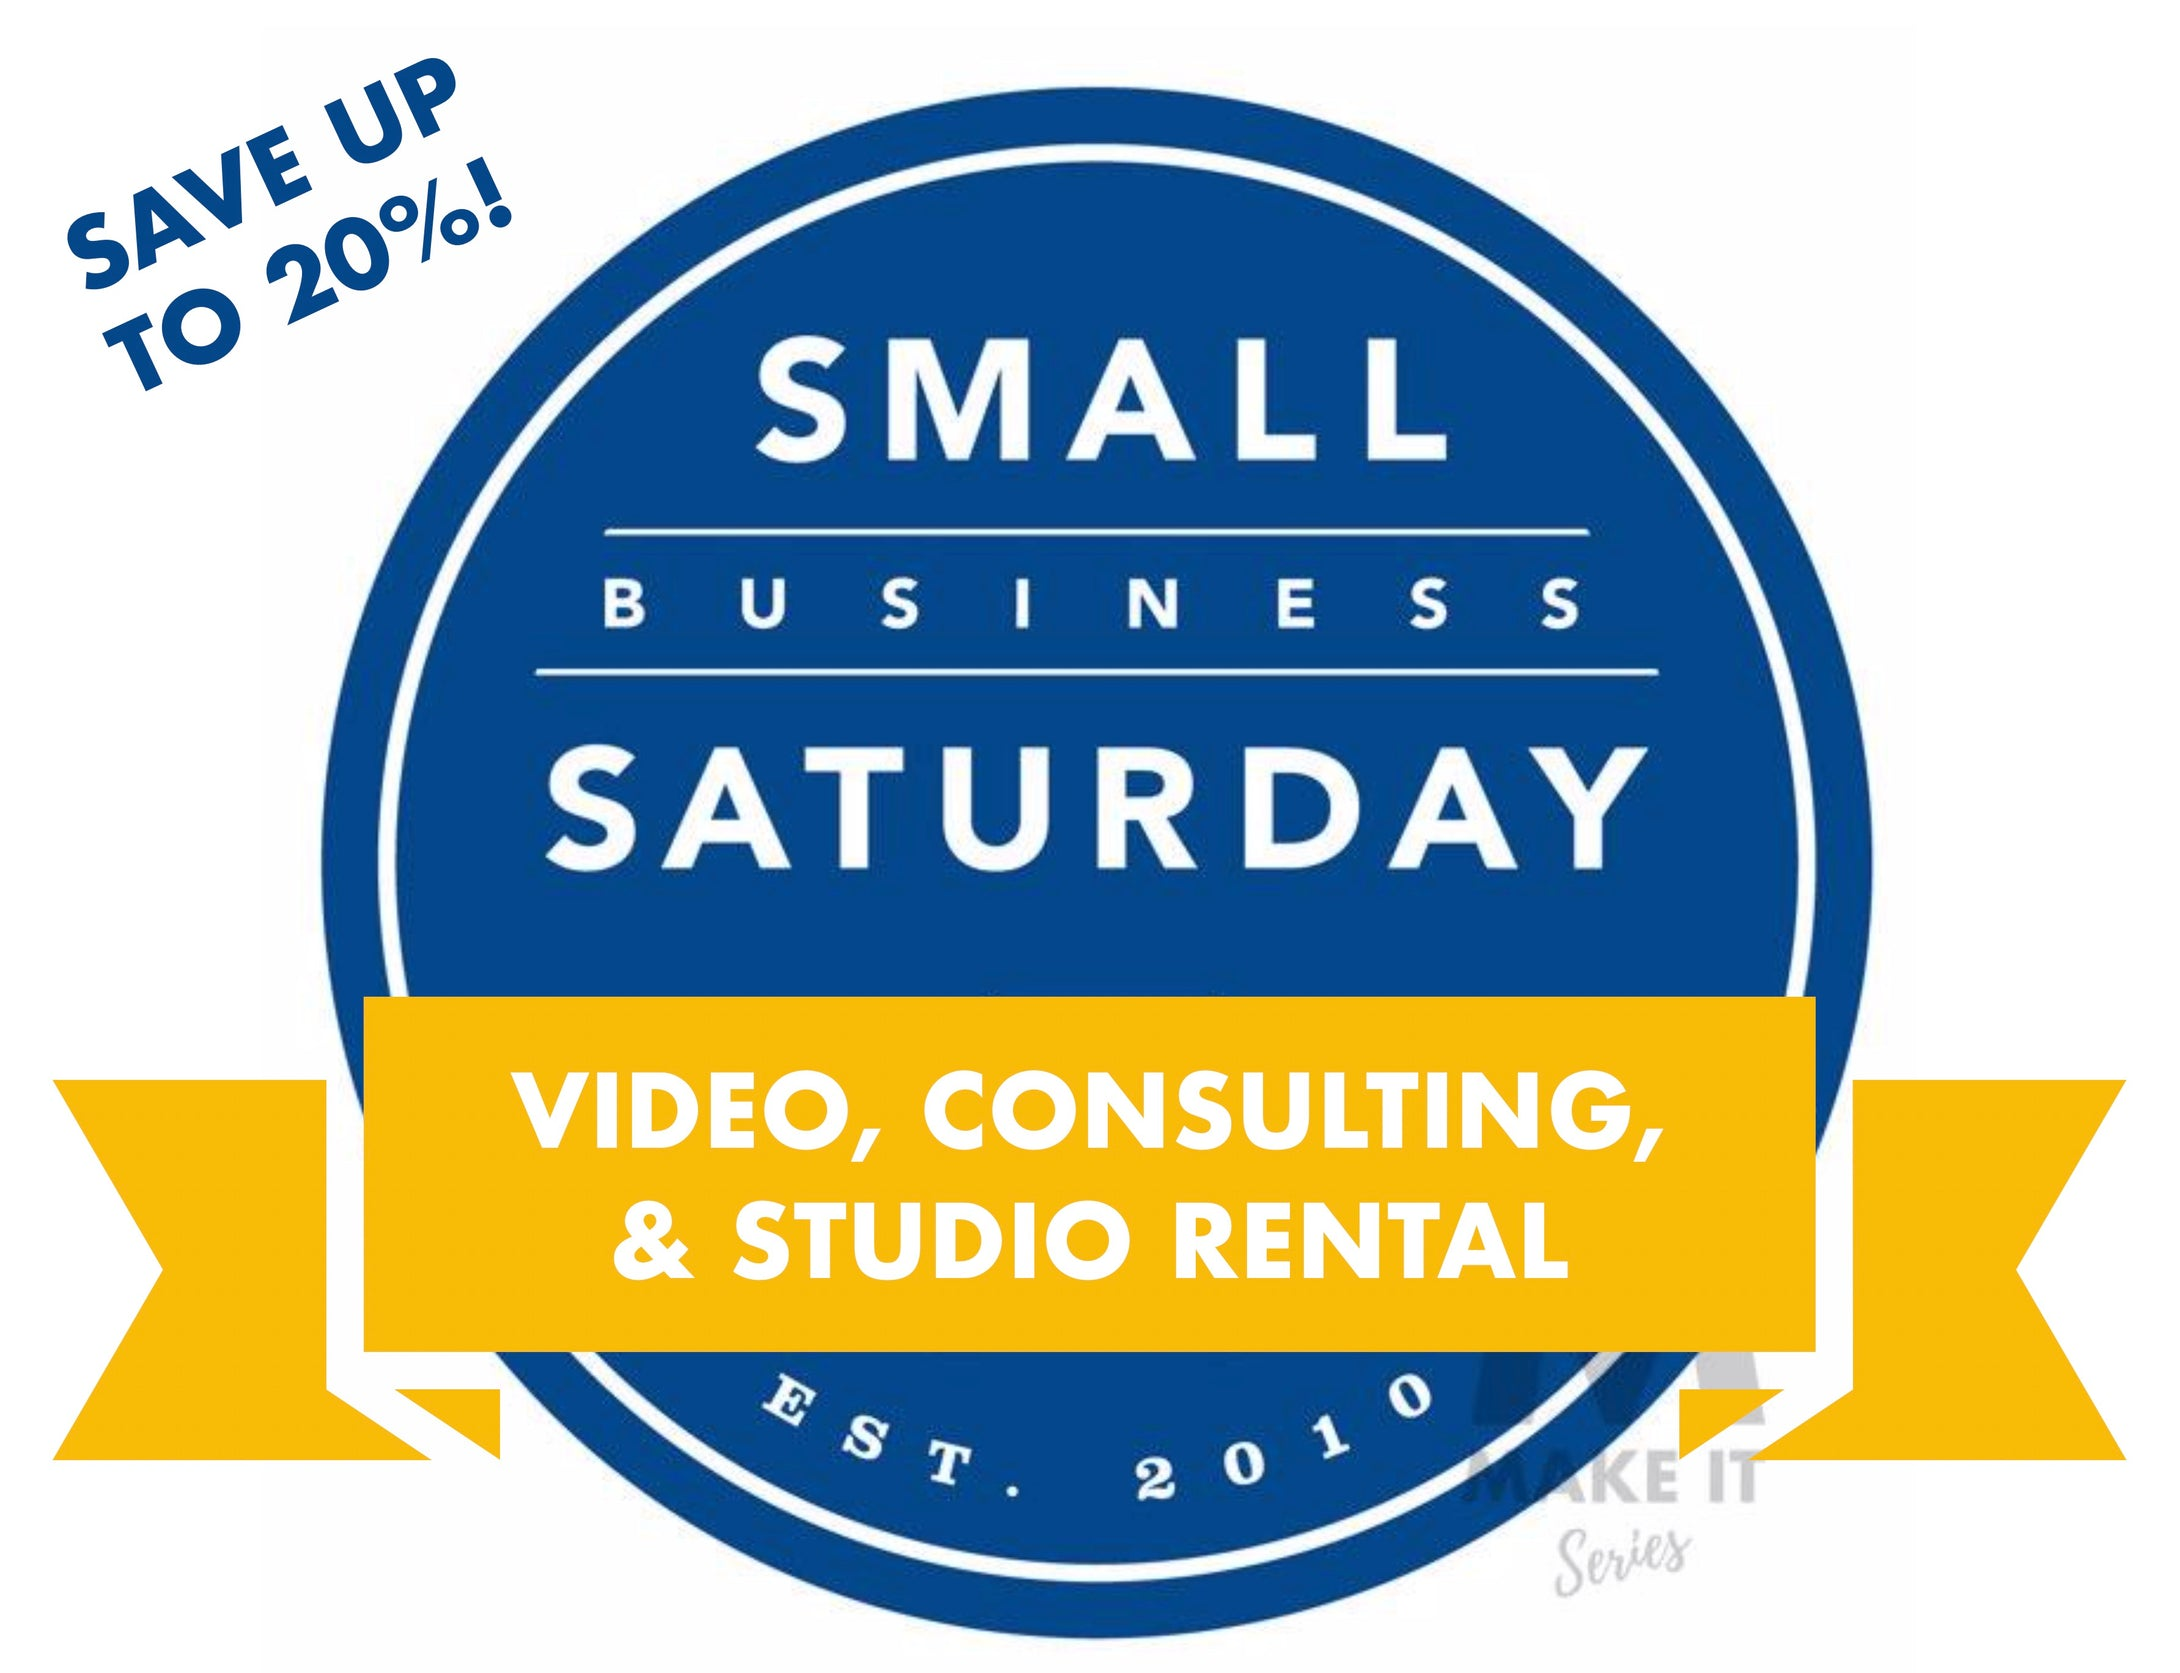 Small Business Saturday Video SALE! (Good Through November 24th, 2018)